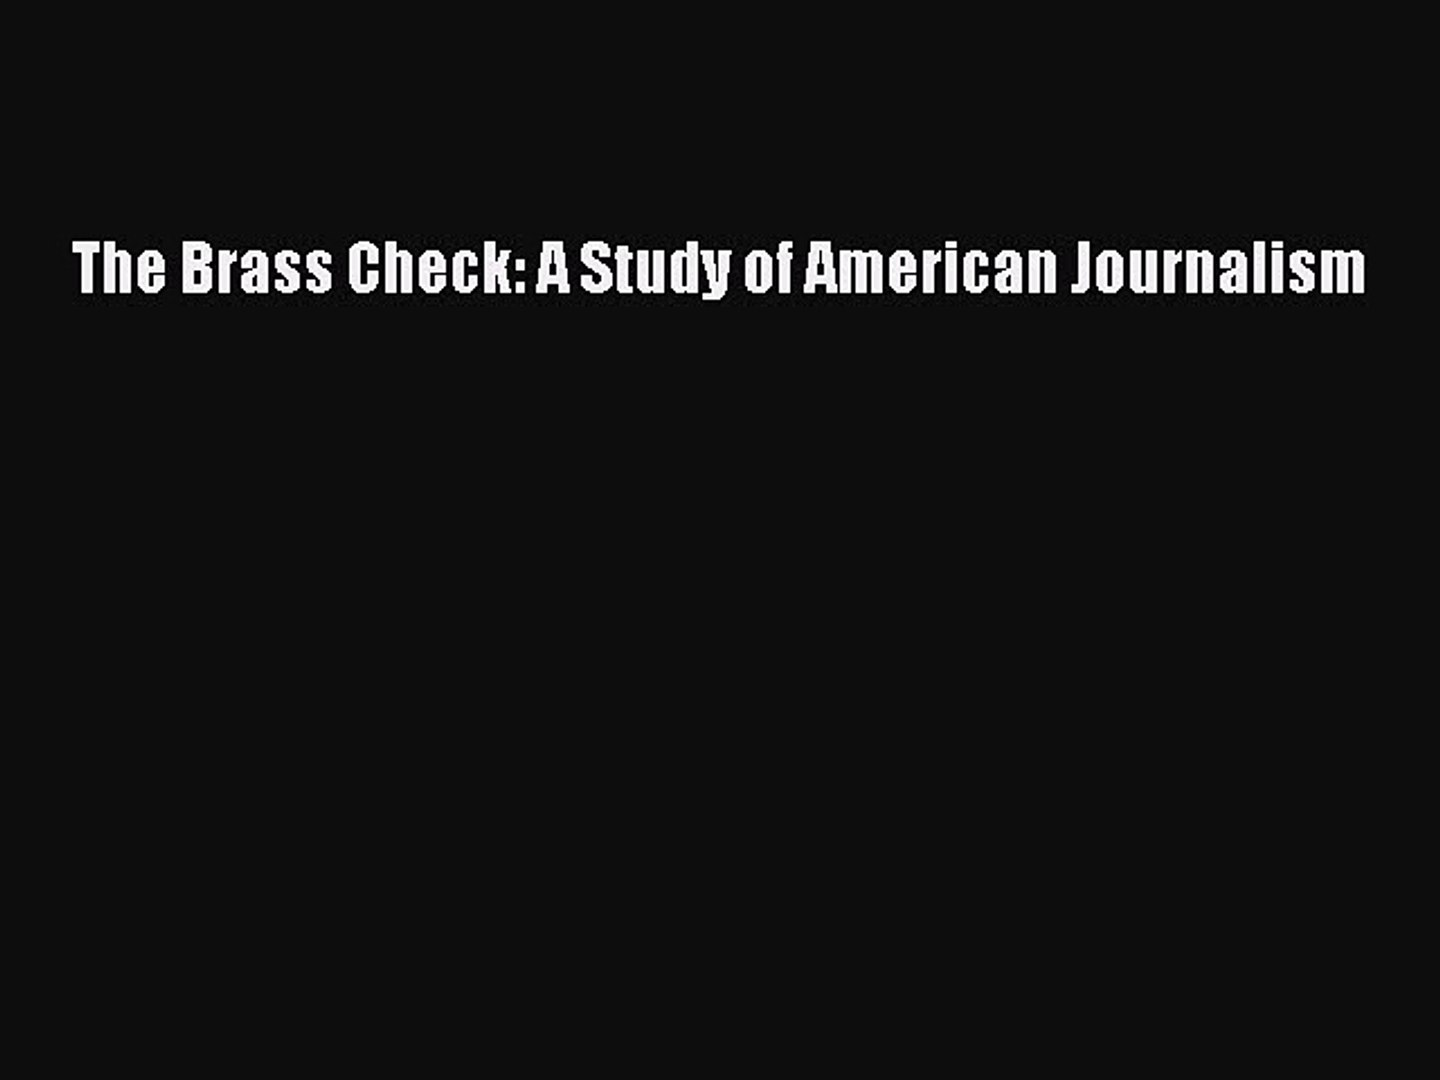 [Download] The Brass Check: A Study of American Journalism [PDF] Full Ebook